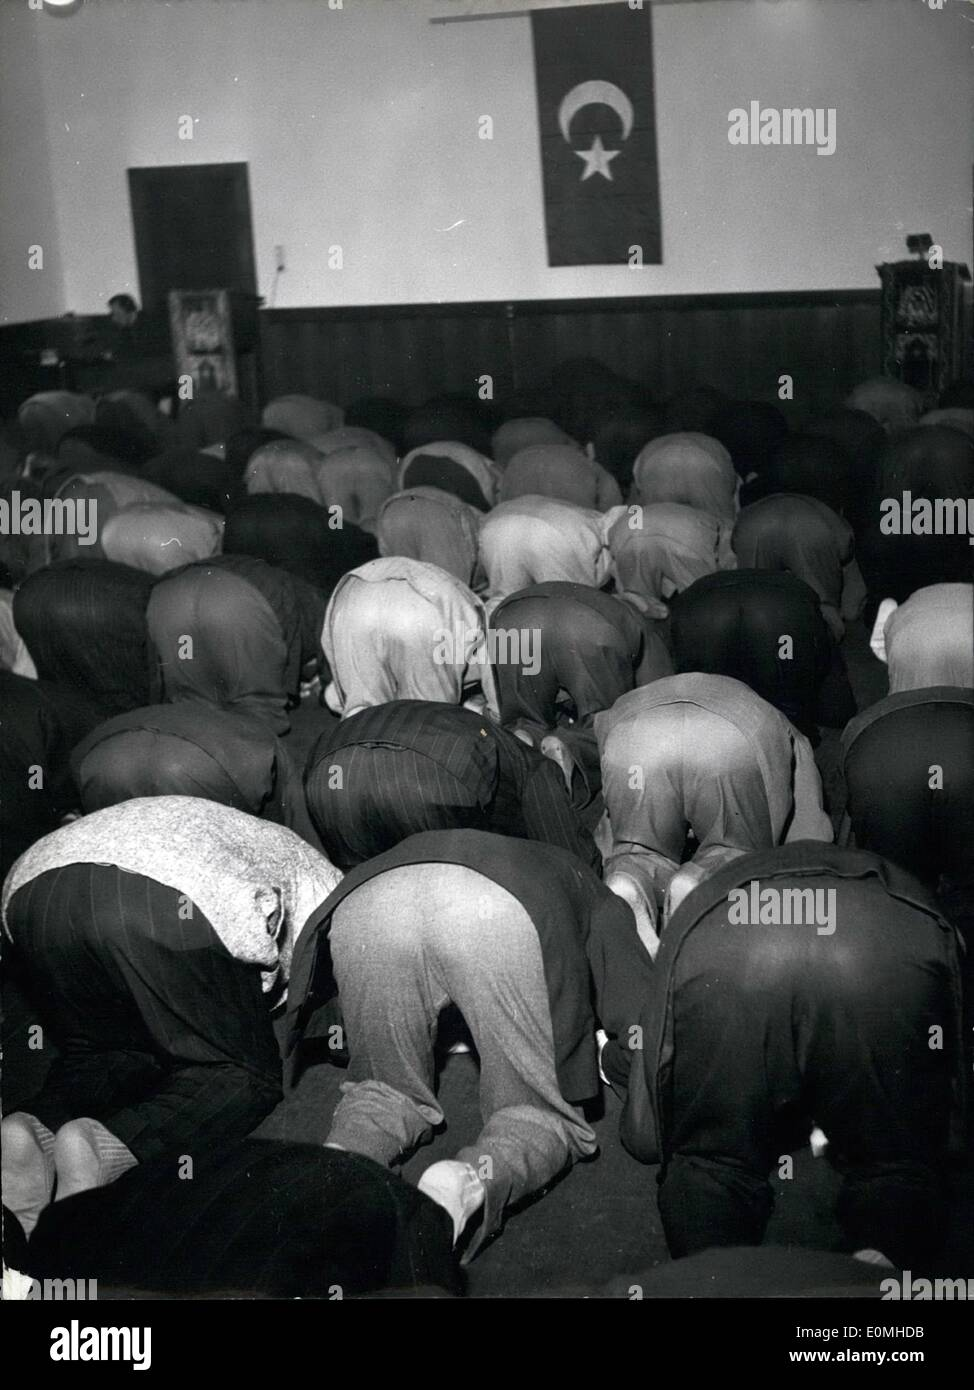 Jul. 07, 1955 - Nearly 1,000 muslims bowed their heads this morning at the German Museum to pray from Munich to Mecca for the biggest holiday in the Islamic calendar year, the Kurban Bayram. 3,000 muslims live in West Germany currently, 1,000 of which are in Munich. Wr - Stock Image